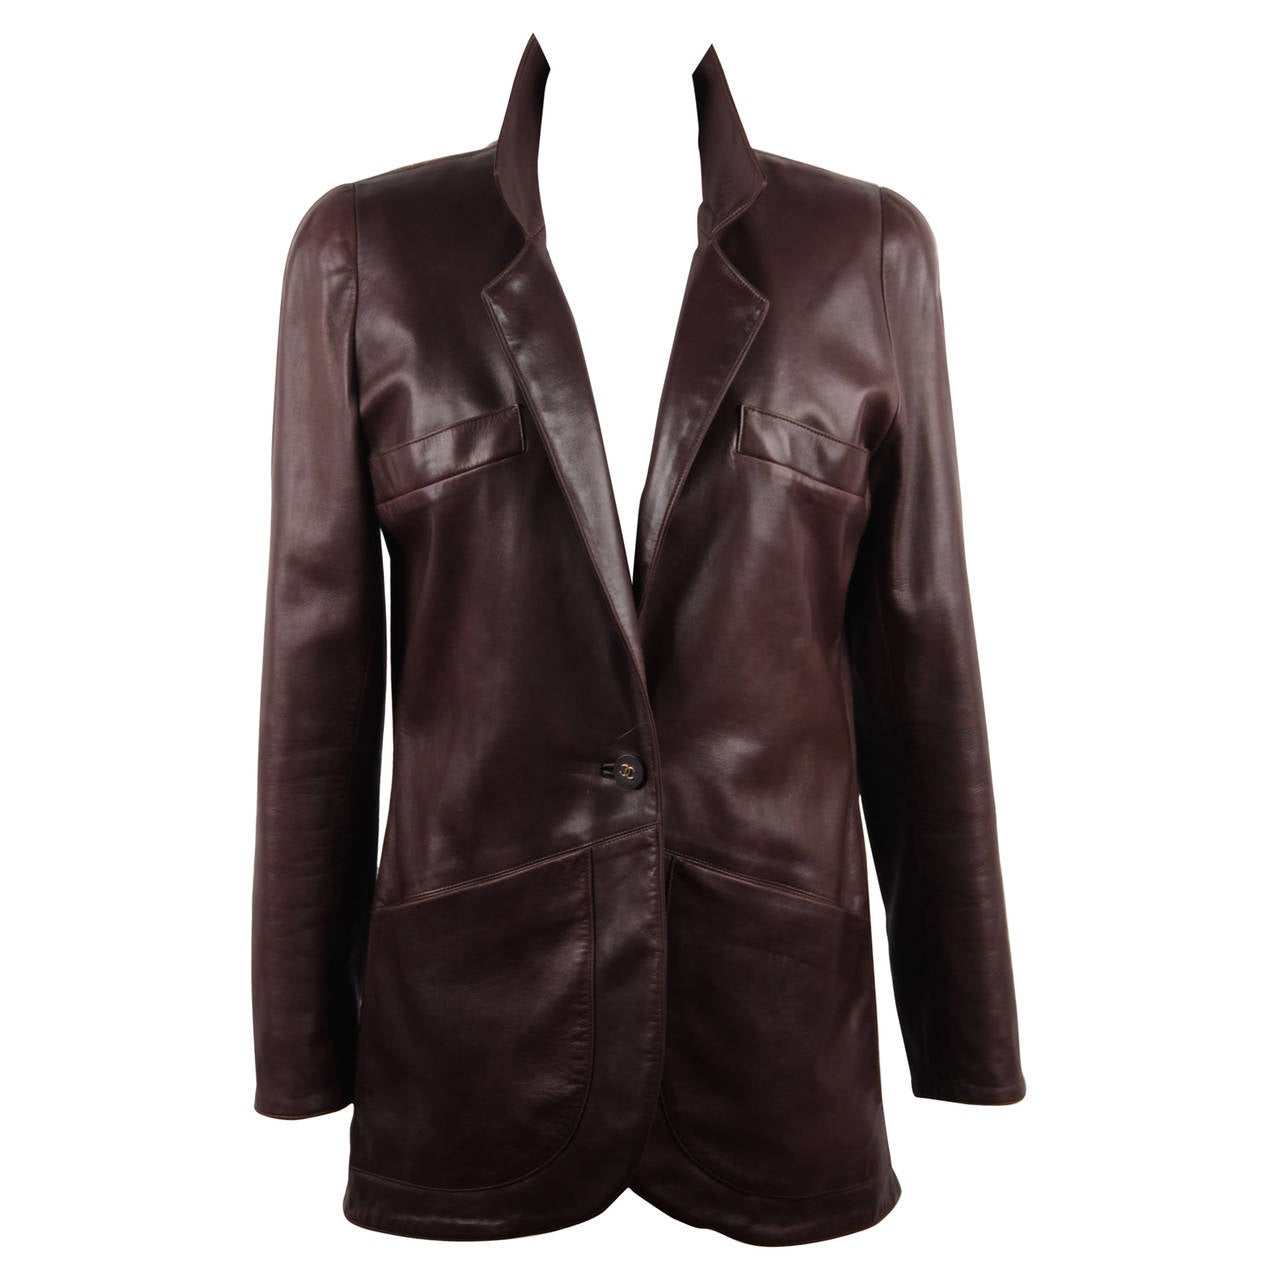 CHANEL BOUTIQUE VINTAGE Chocolate Brown LEATHER JACKET Blazer SIZE 38 FR 1